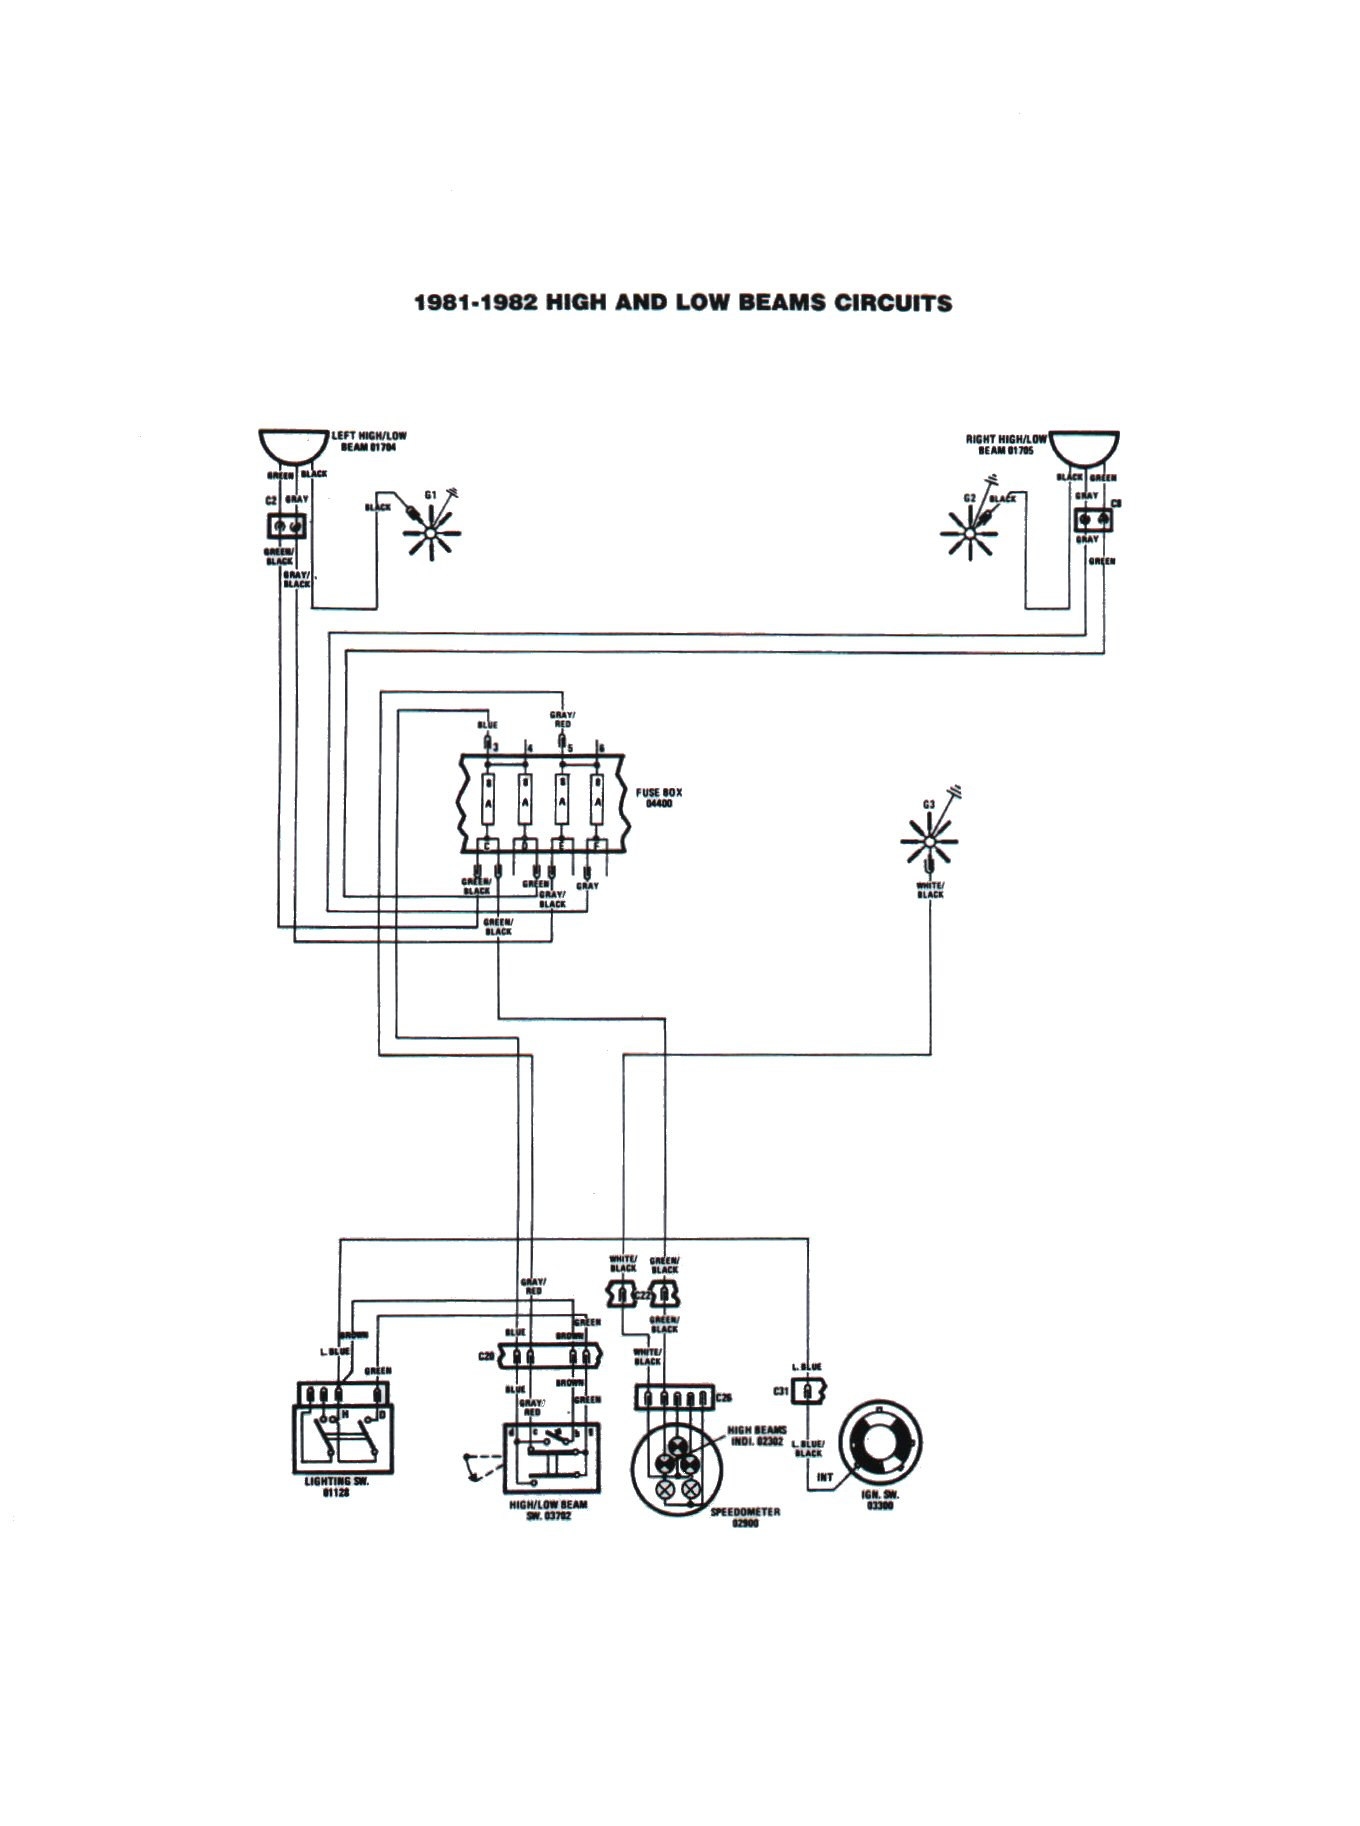 Technical Advice Sacramento Area Fiat Club 1981 Spider Wiring Diagram 1980 81 Page 42 43 44